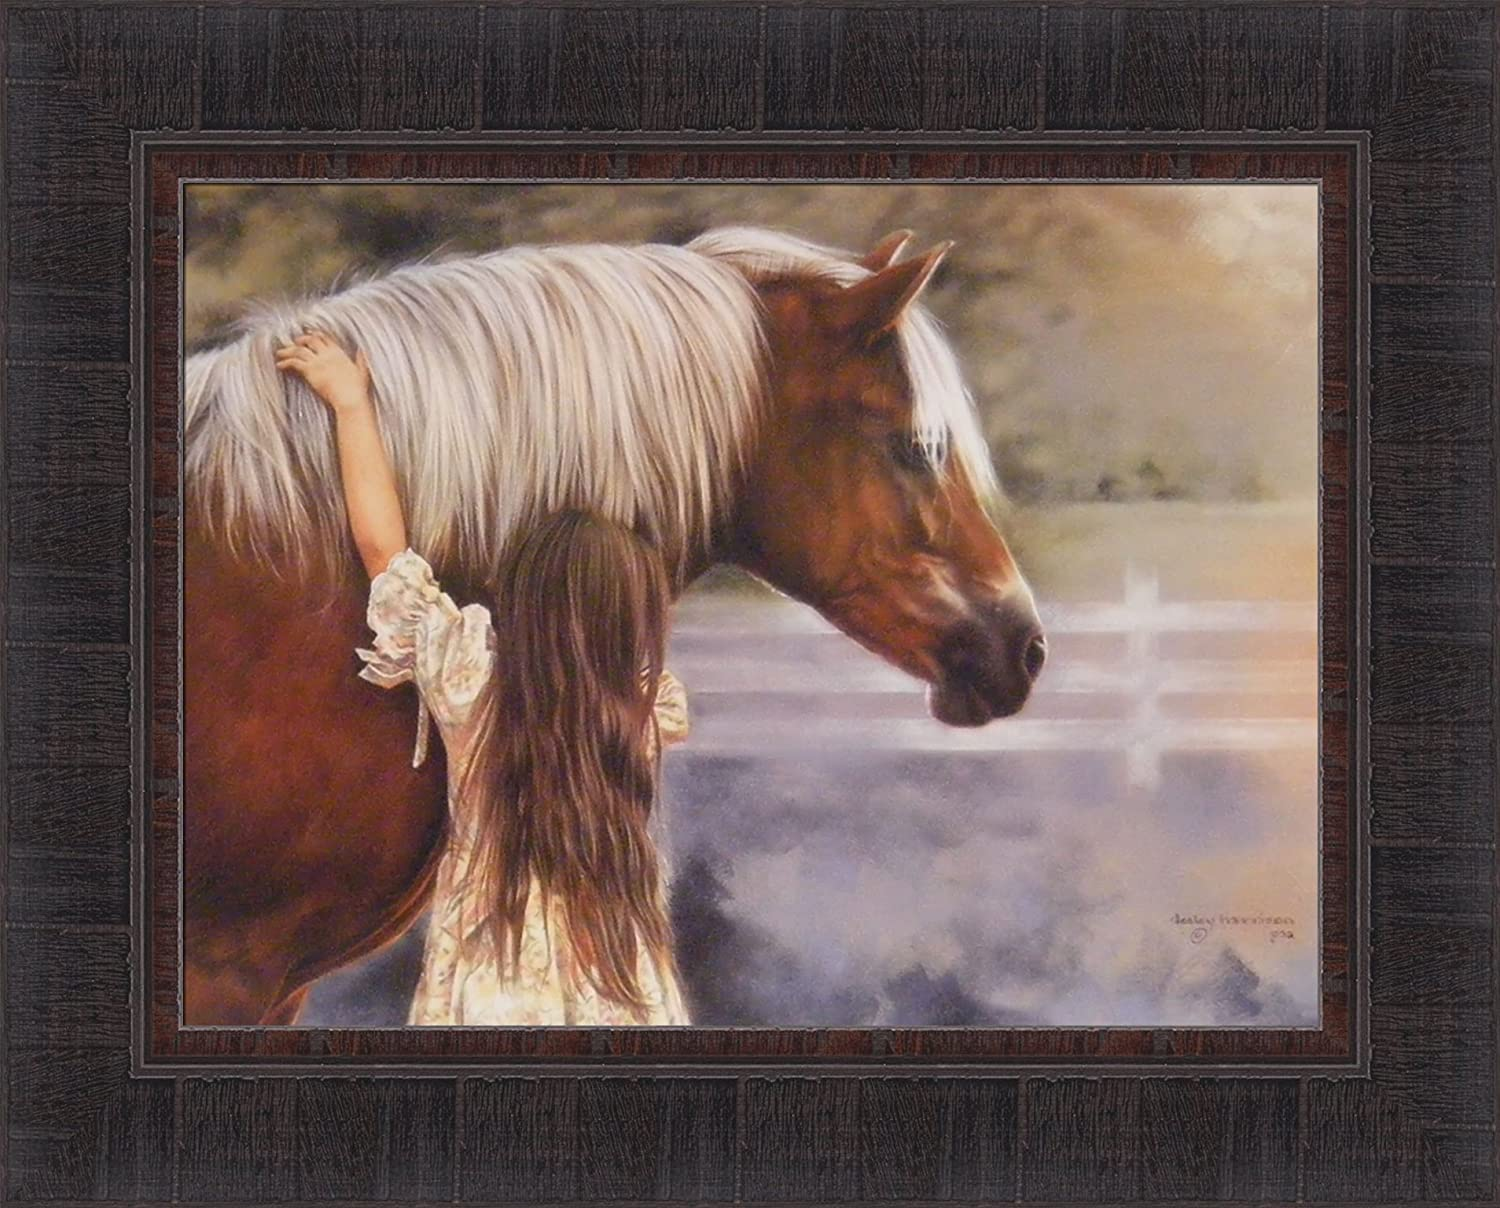 THE BOOSTER CLUB by Lesley Harrison Horse Children Girls 17x21 FRAMED ART PRINT